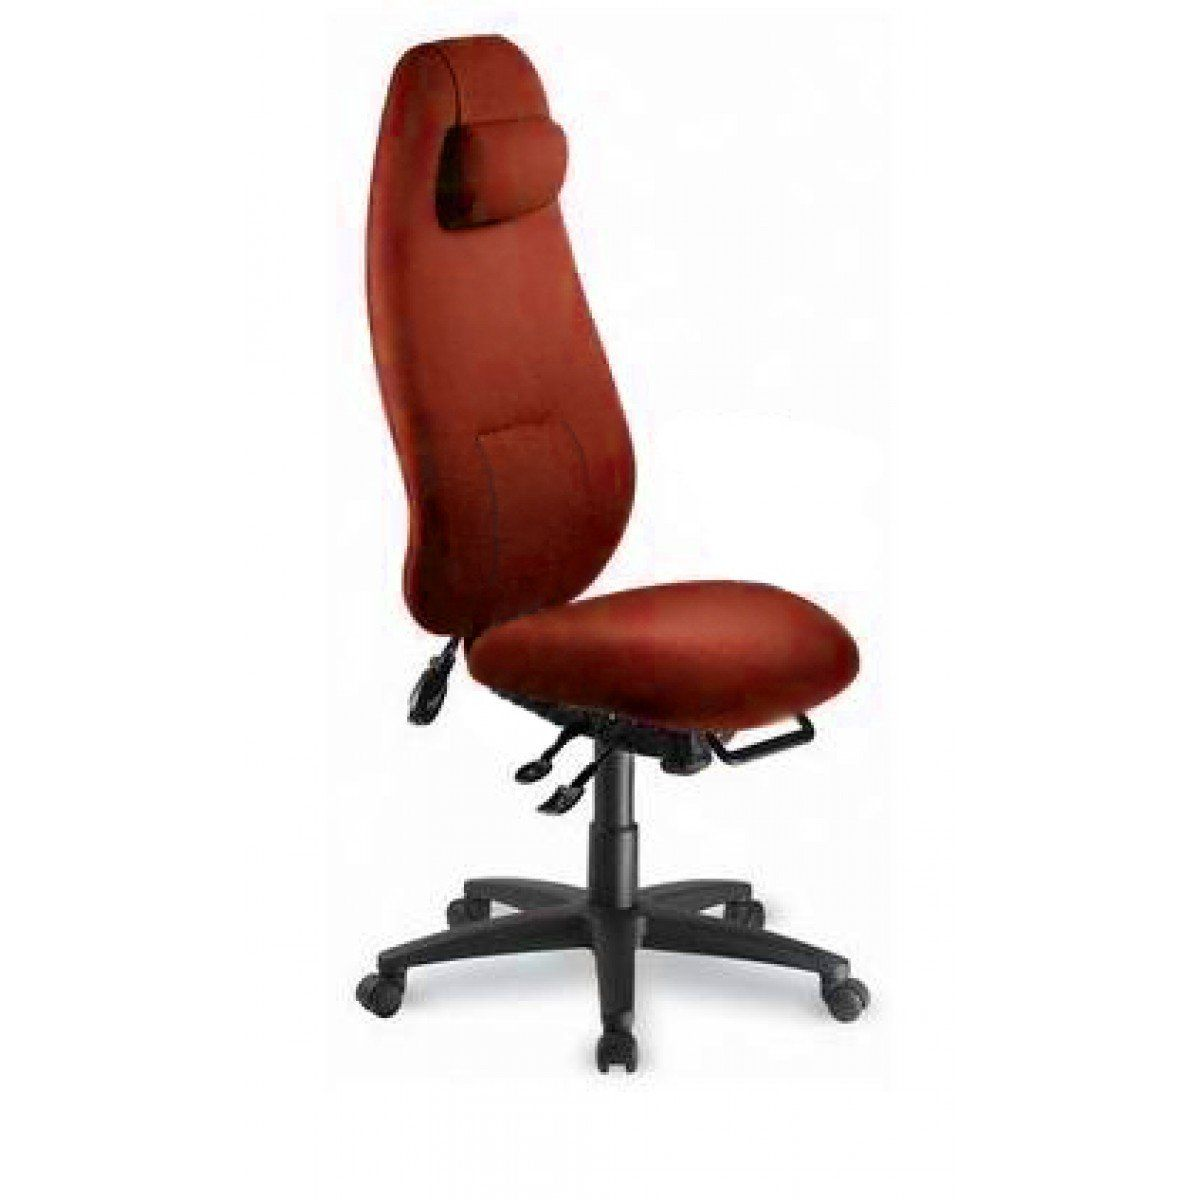 55 Office Chair No Back Best Home Office Furniture Check More At Http Www Shophyperformance Com Office Chair No Office Chair Chair High Back Office Chair